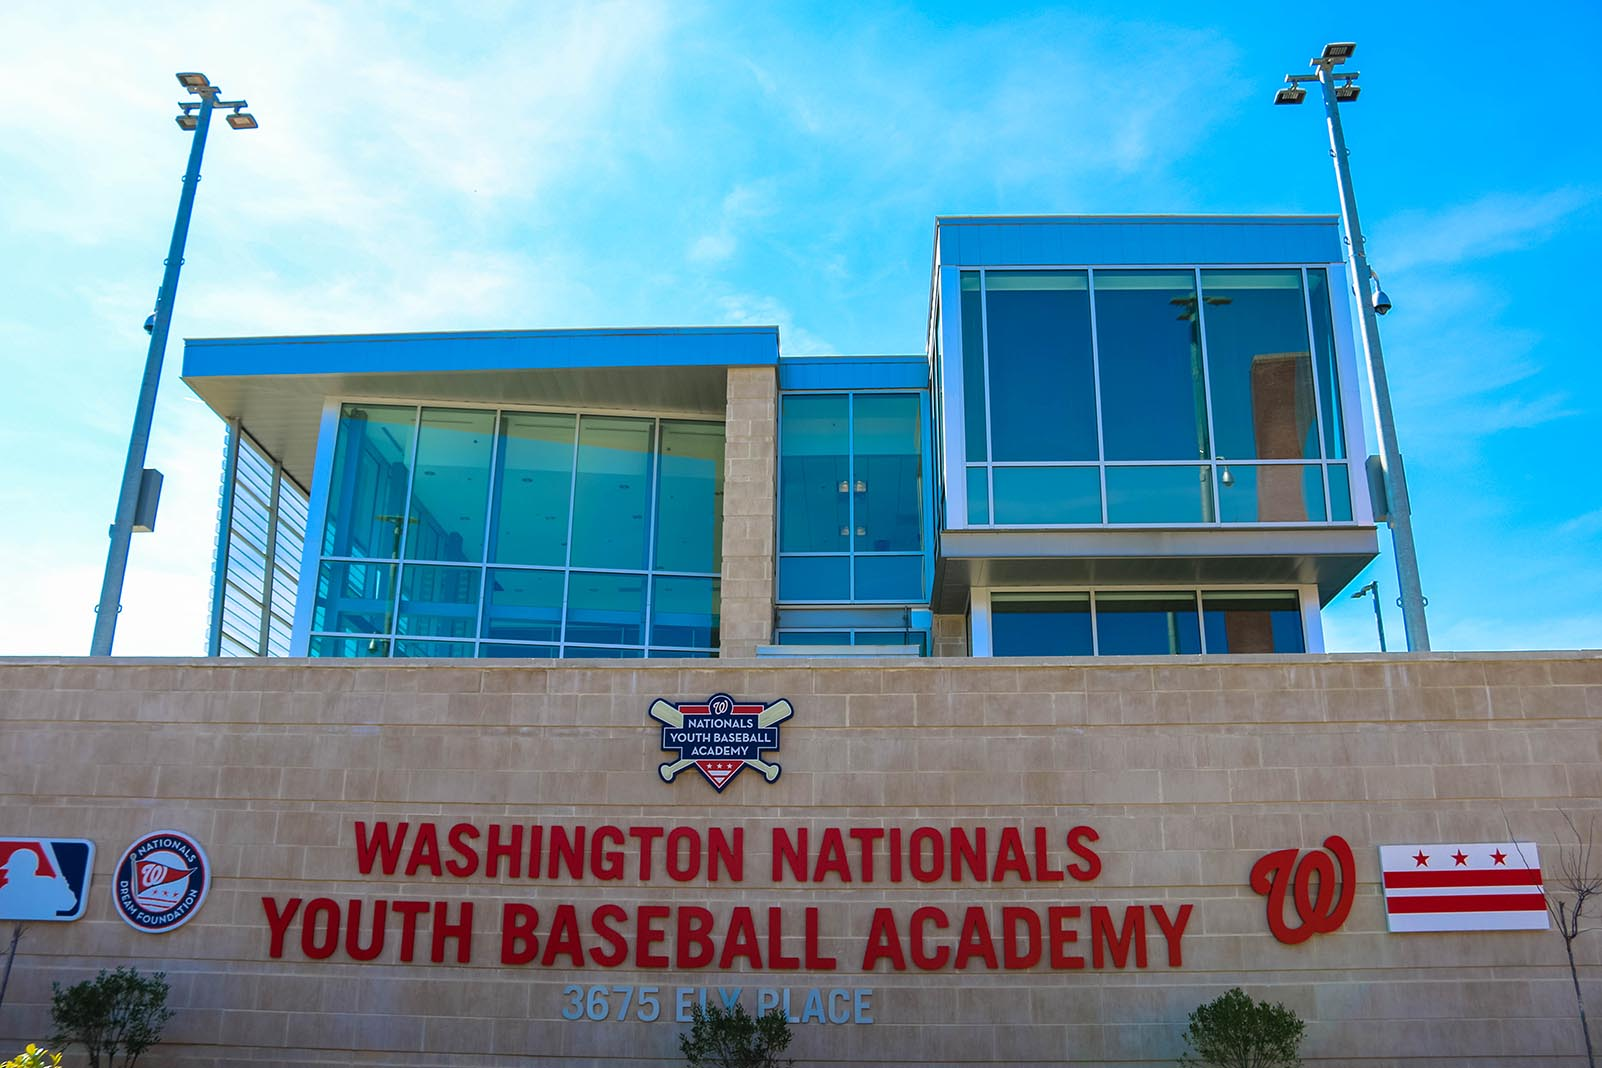 Washington Nationals Baseball Academy in Fort Dupont, MD